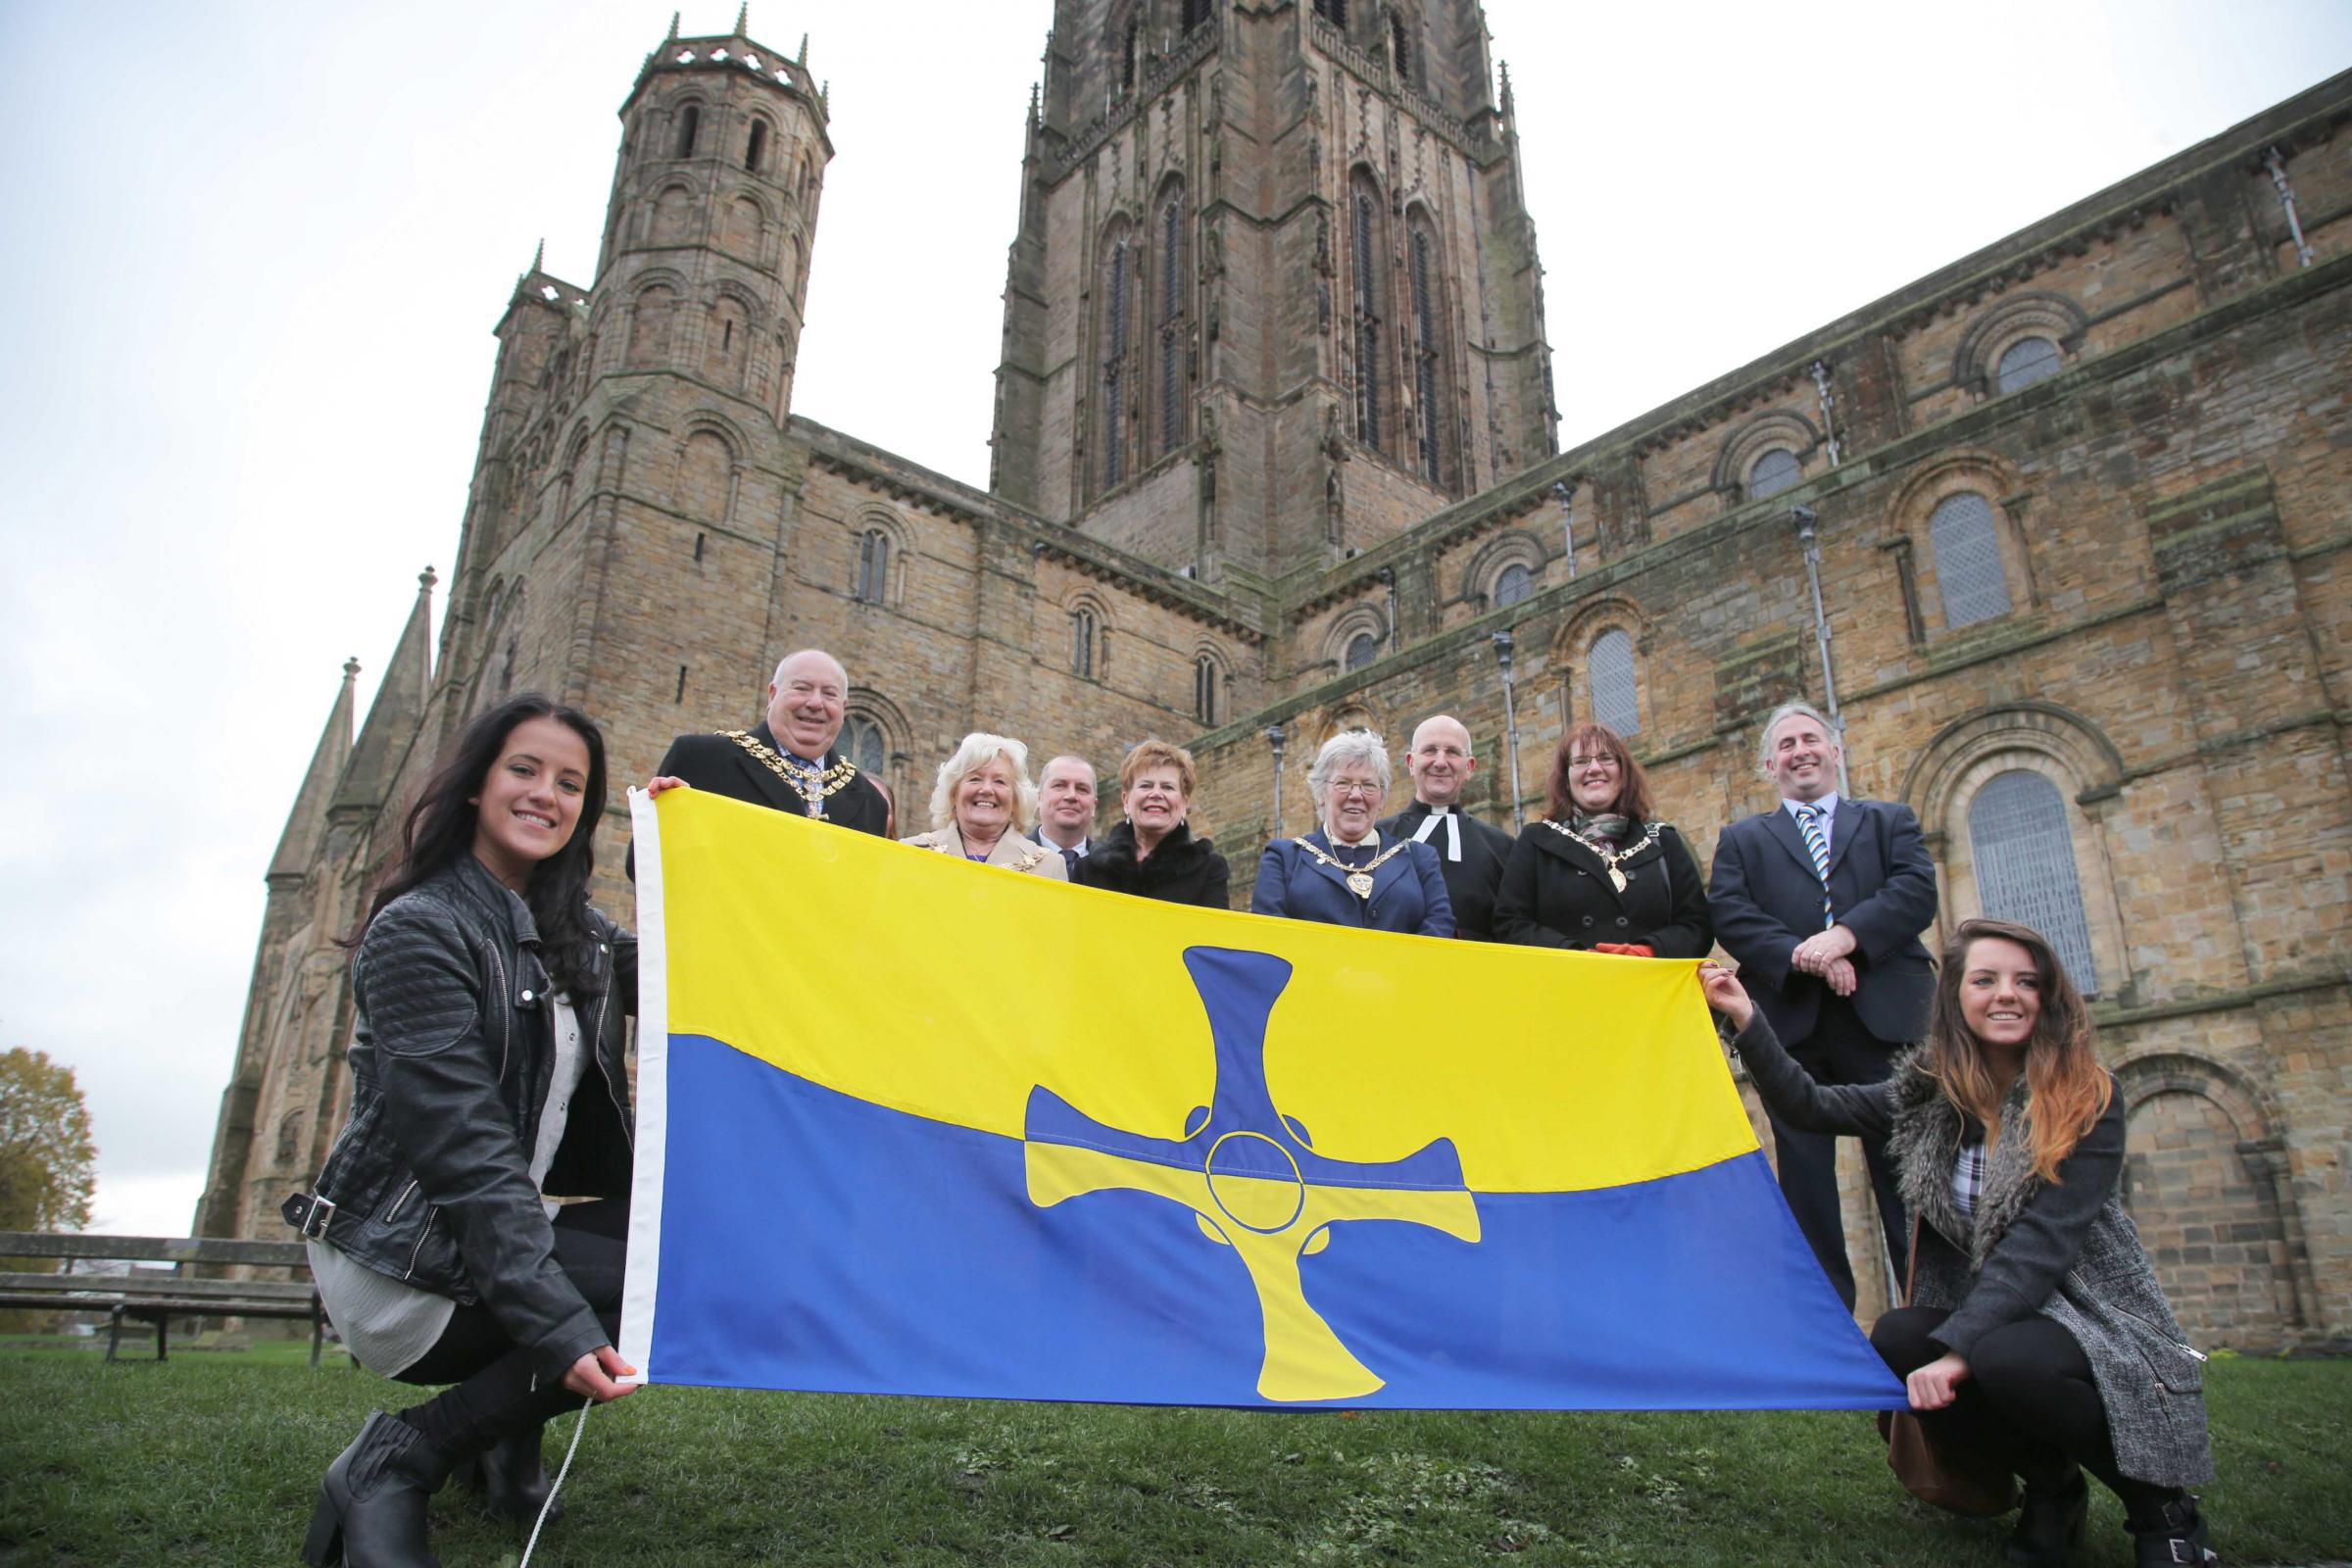 Durham flag designers Katie, left, and twin sister Holly Moffatt from Chilton hold the new flag at Durham Cathedral with dignitaries in background.